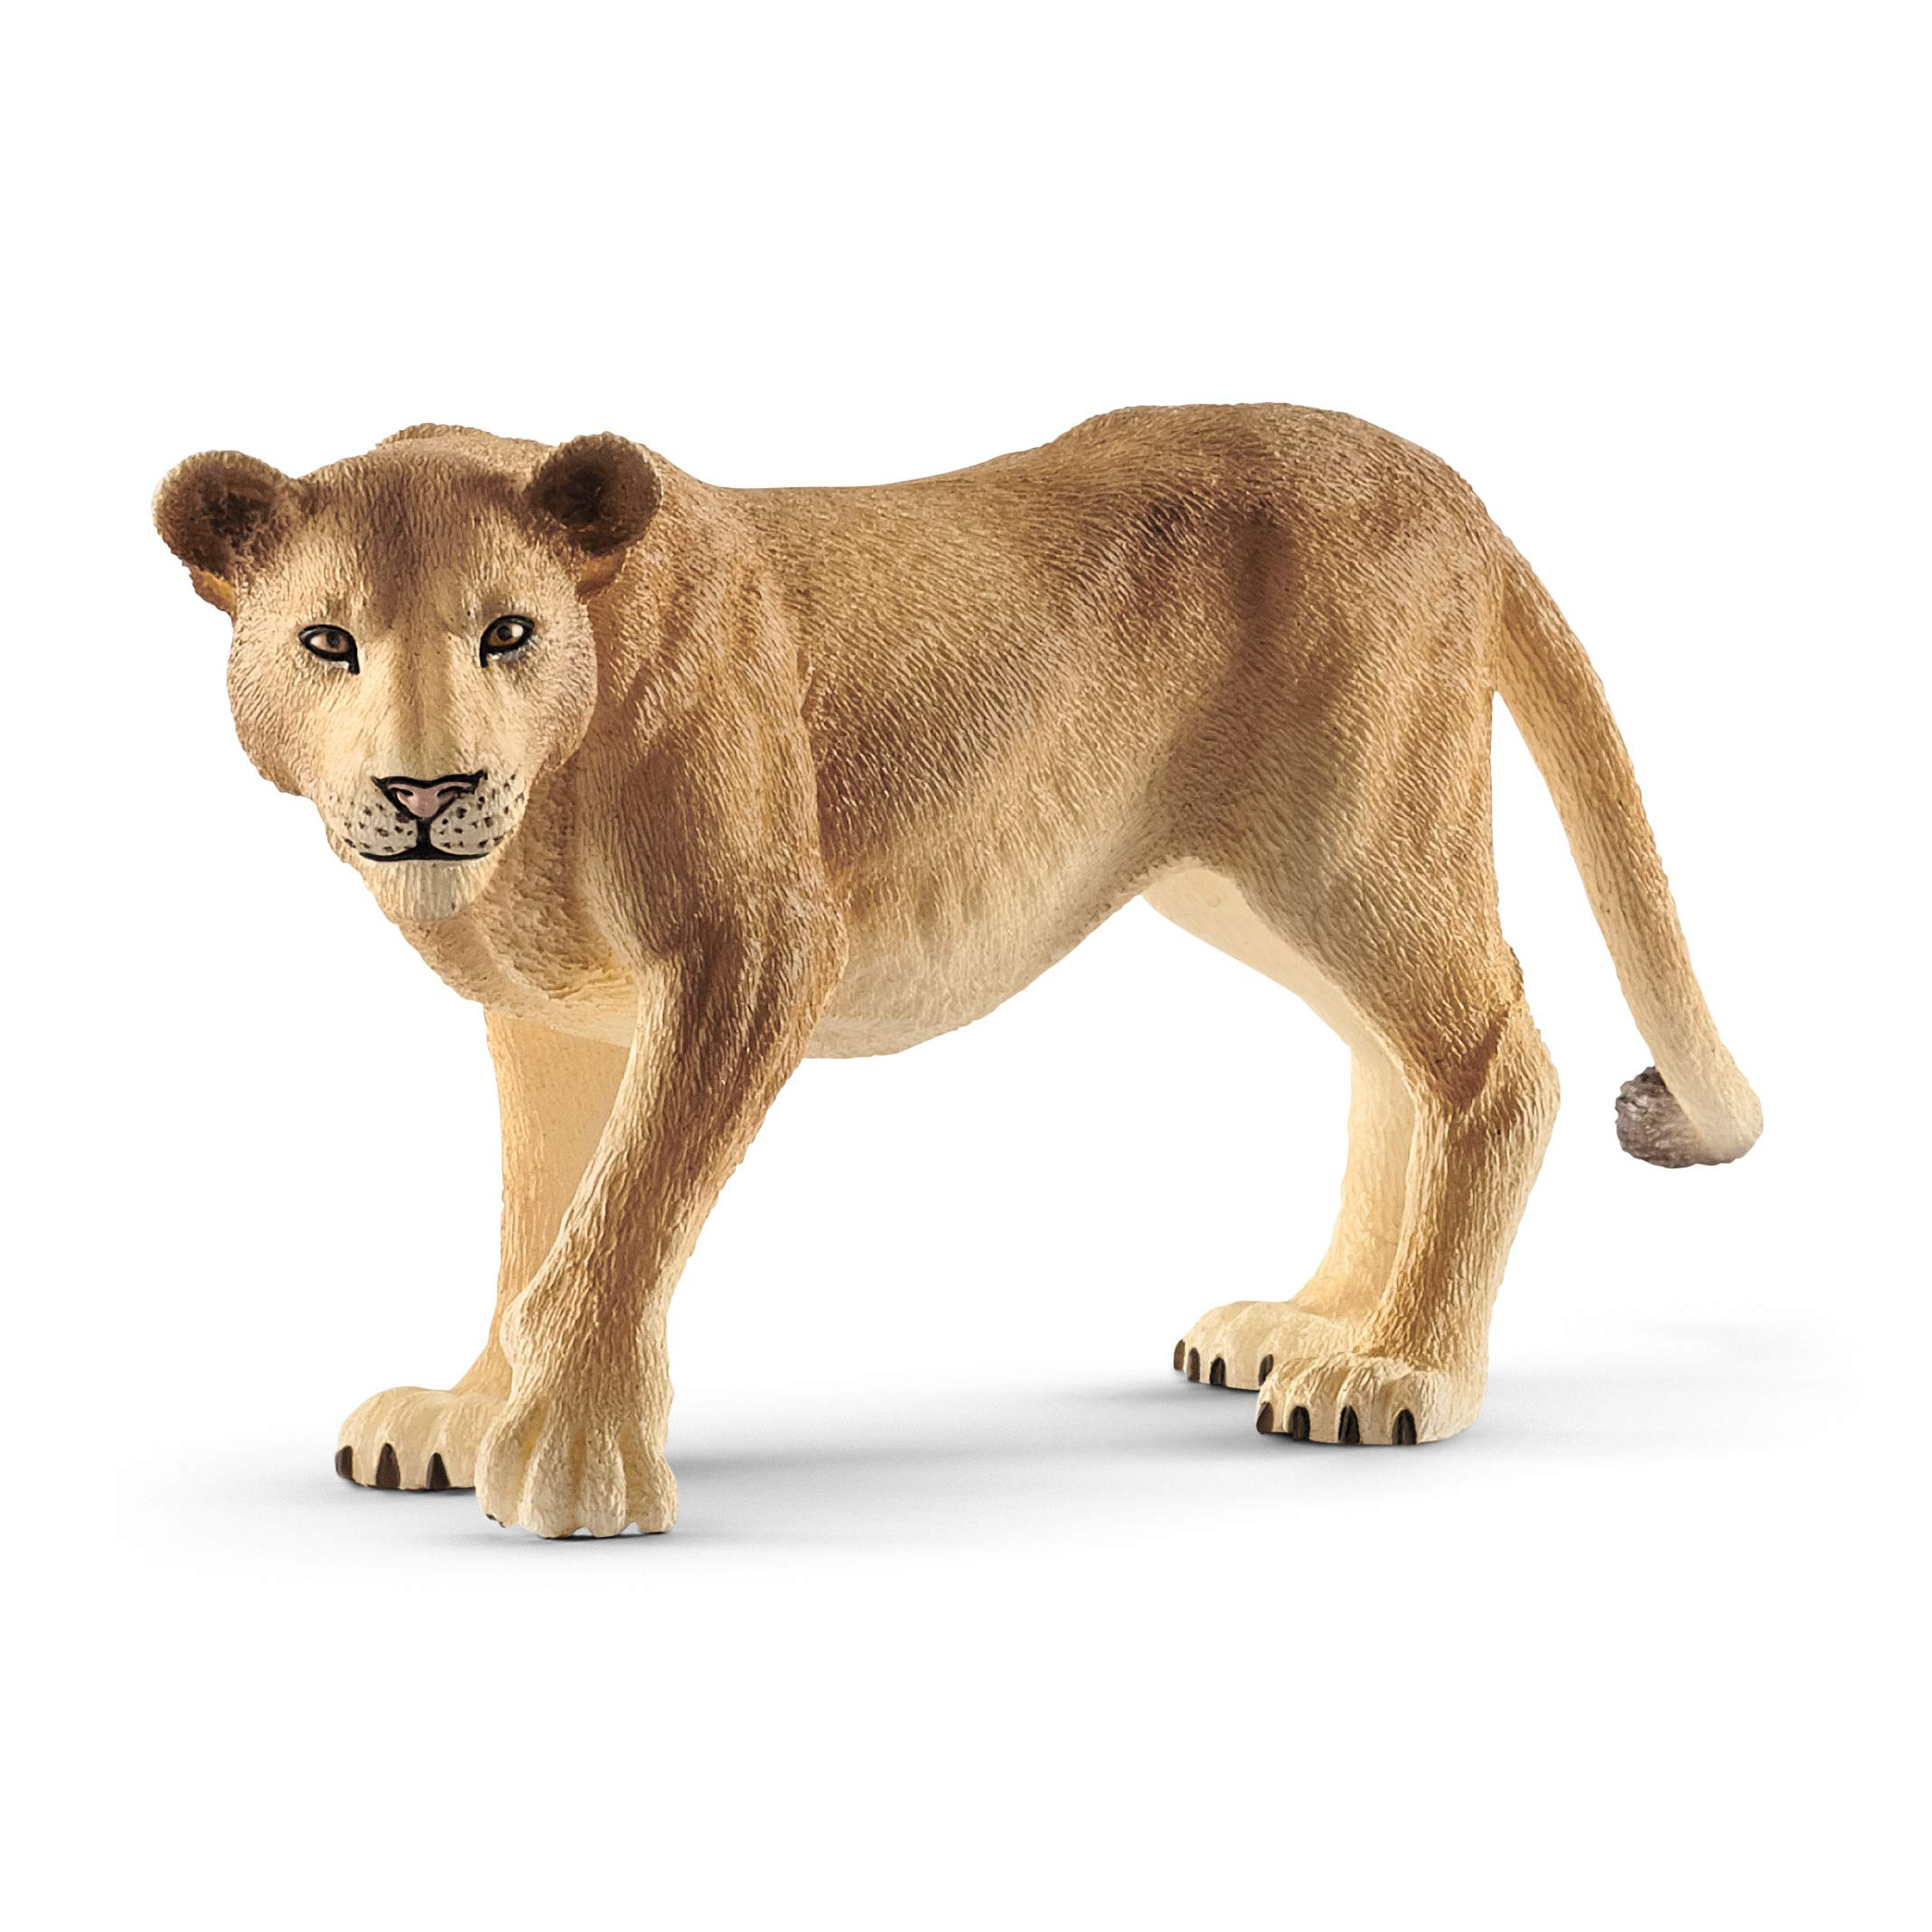 SCHLEICH Wild Life, Animal Figurine, Animal Toys for Boys and Girls 3-8 Years Old, Lioness